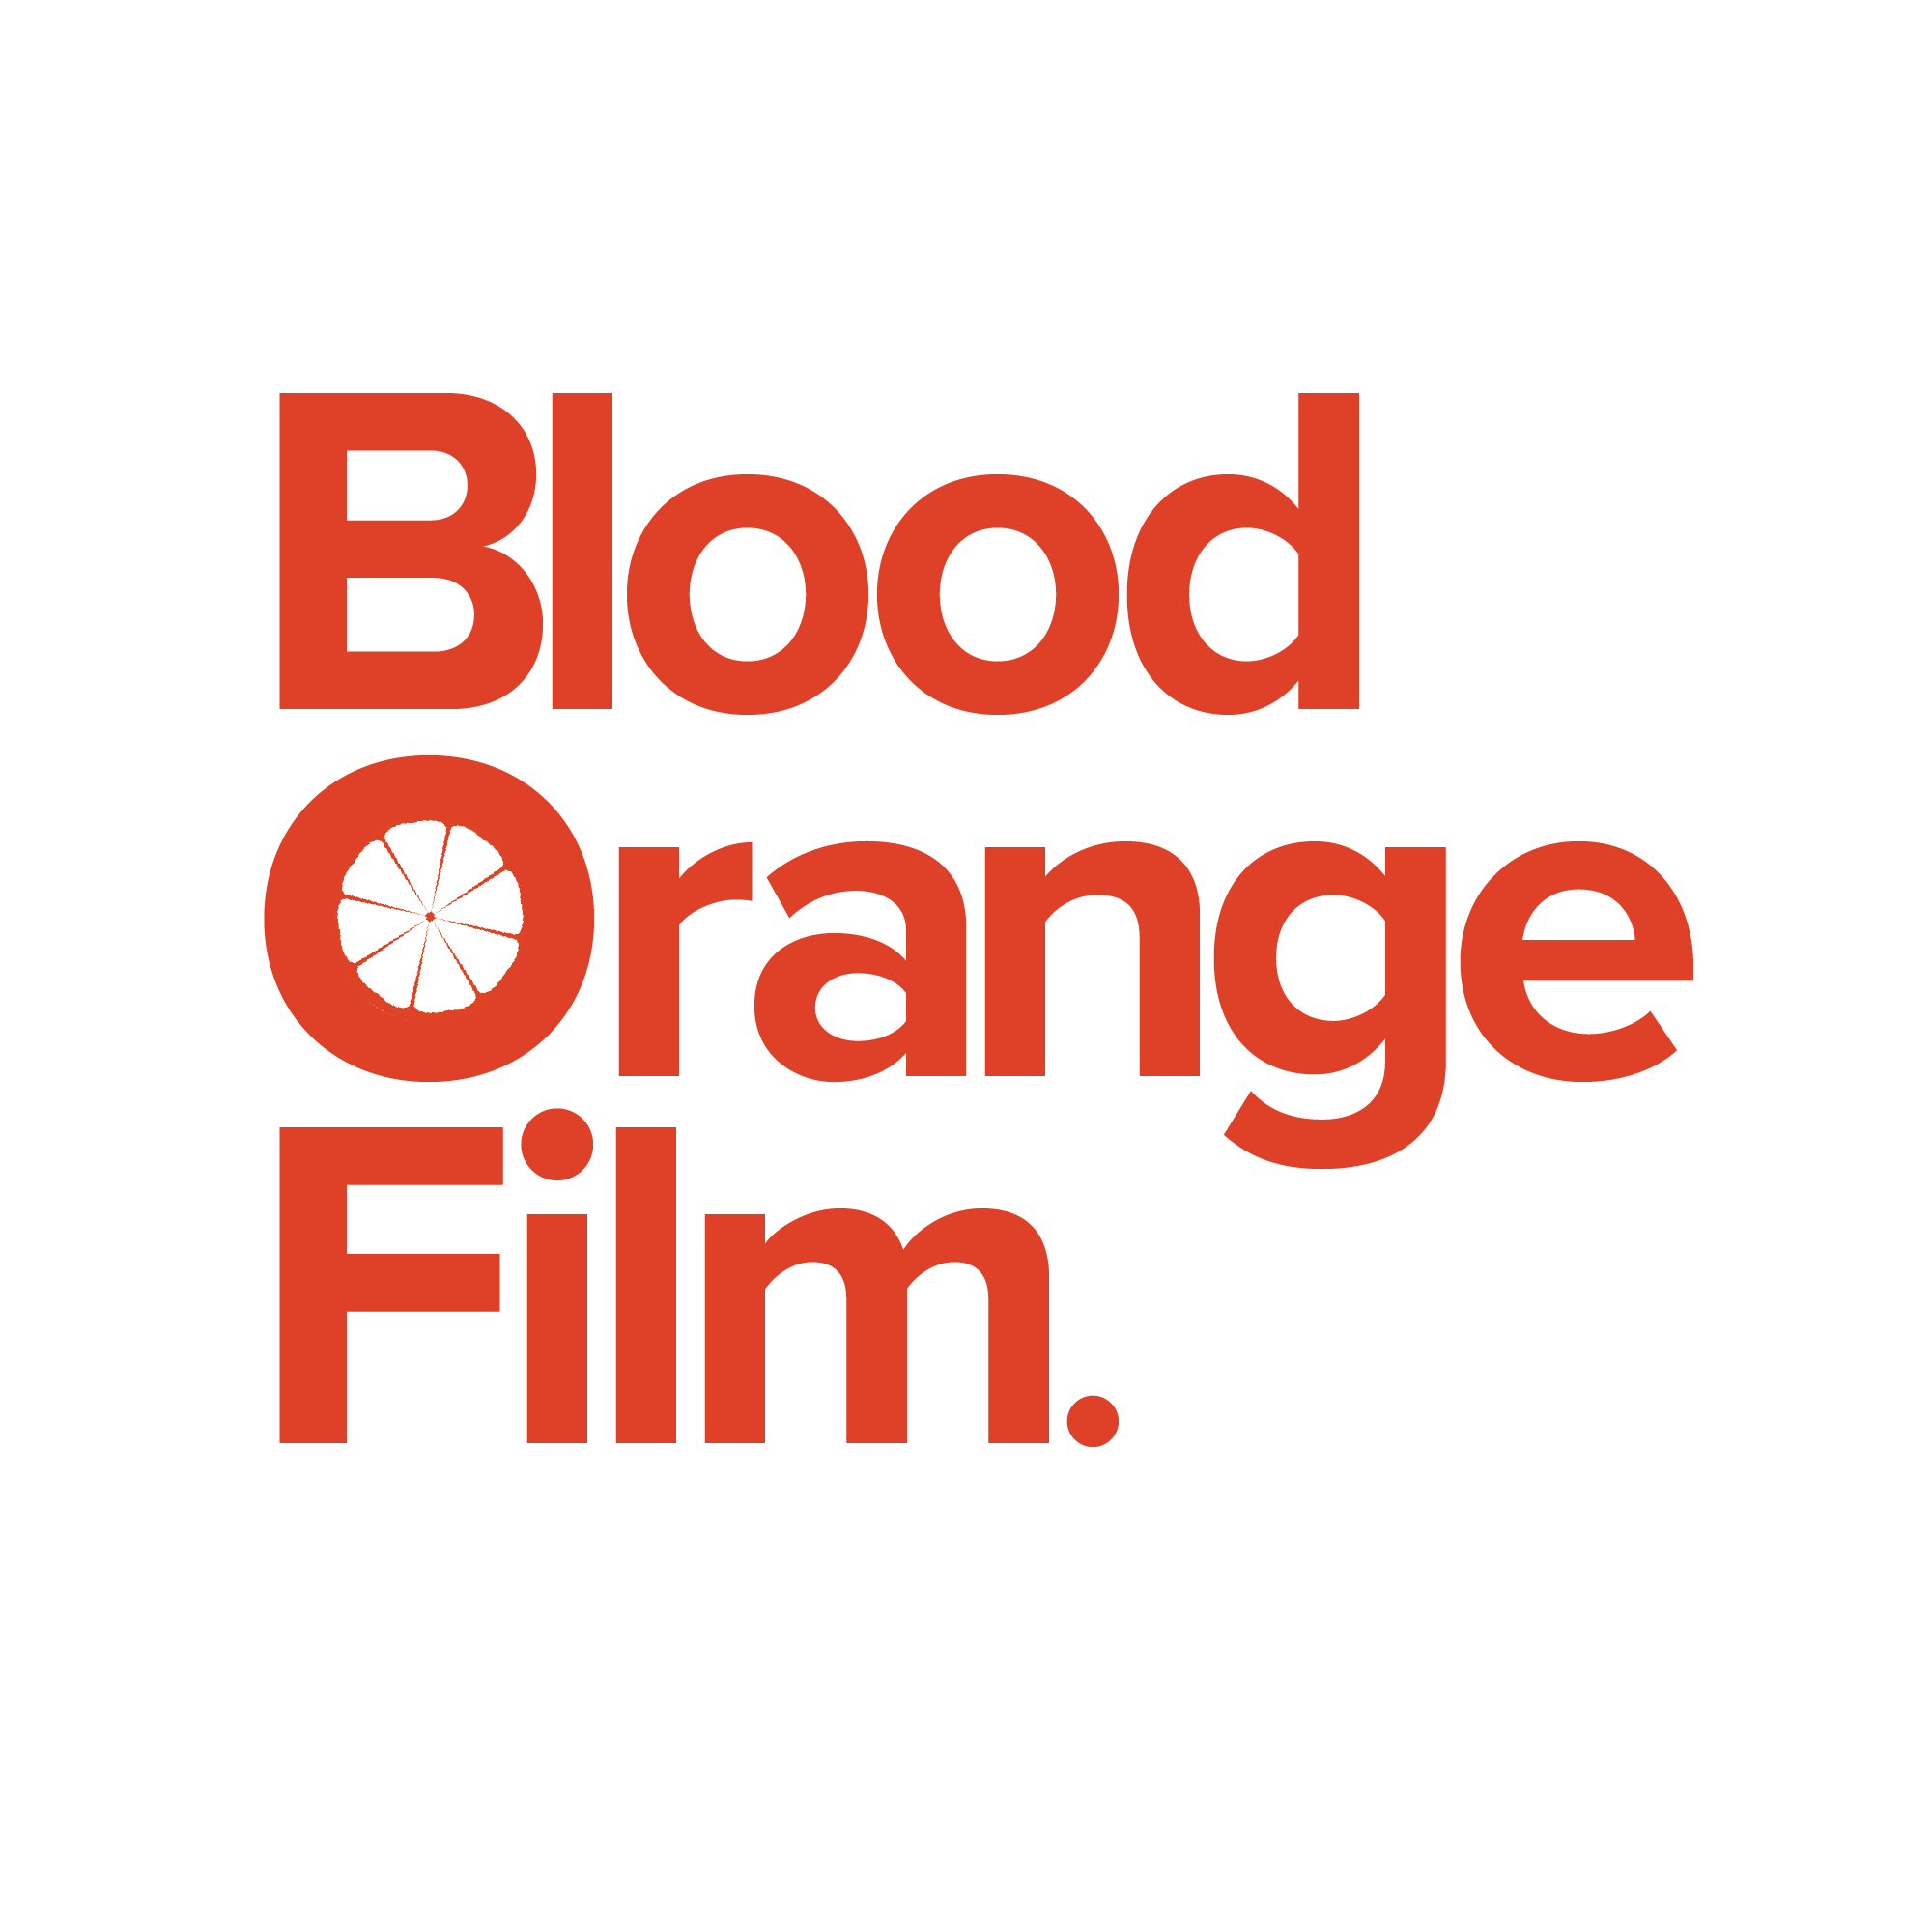 Blood Orange Film